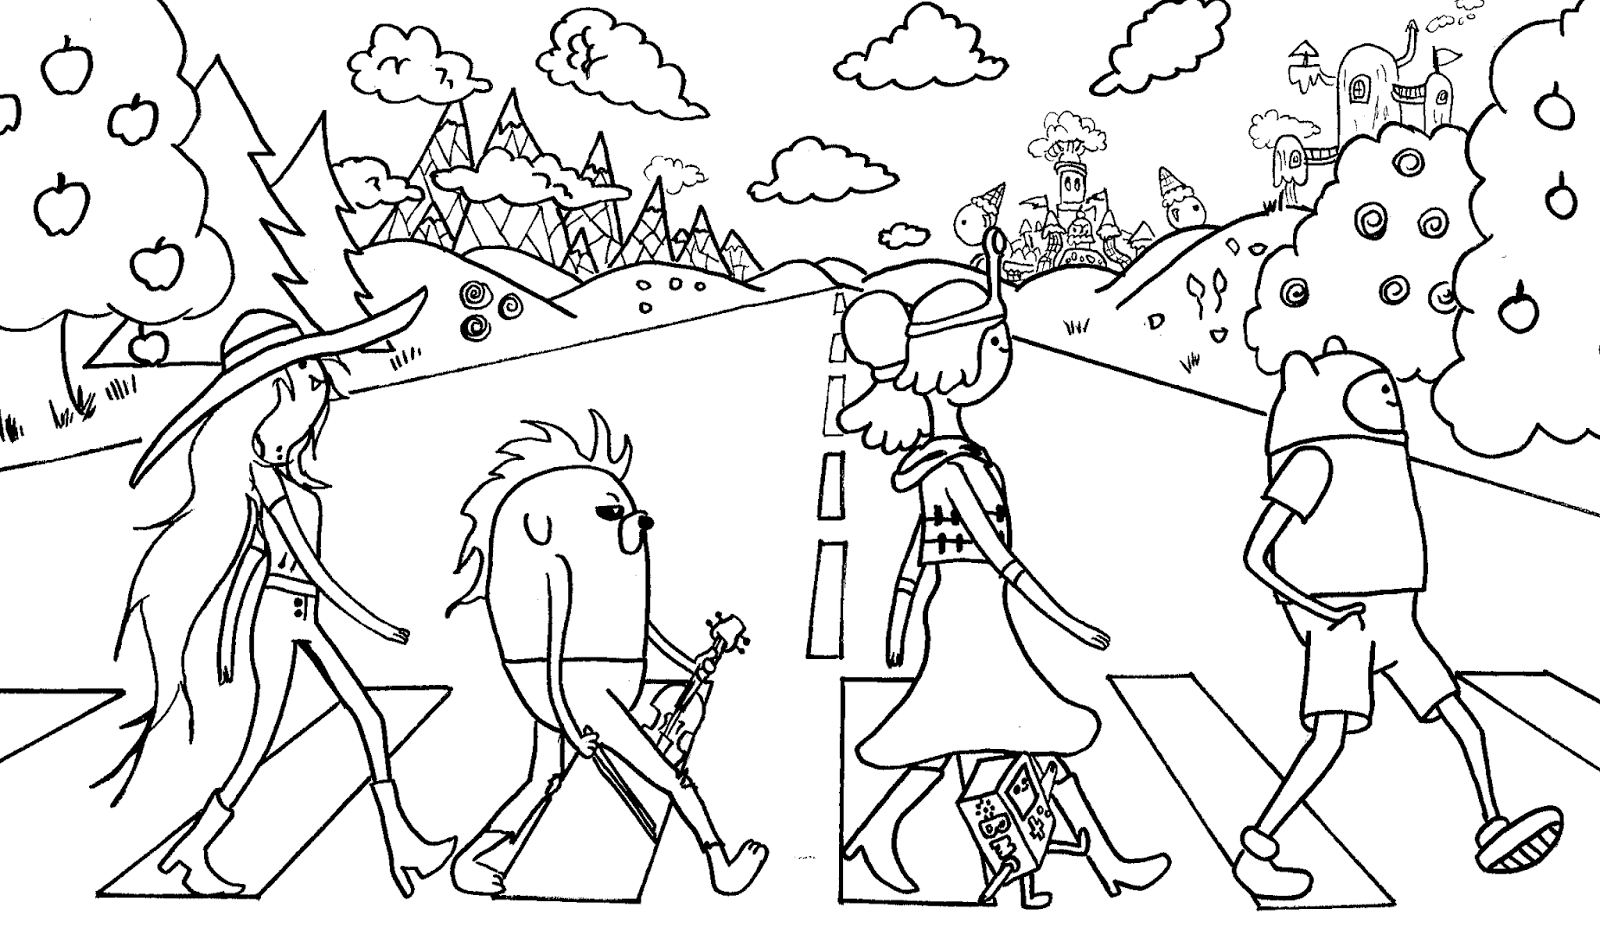 Adventure Time Art Submission: Abbey Road